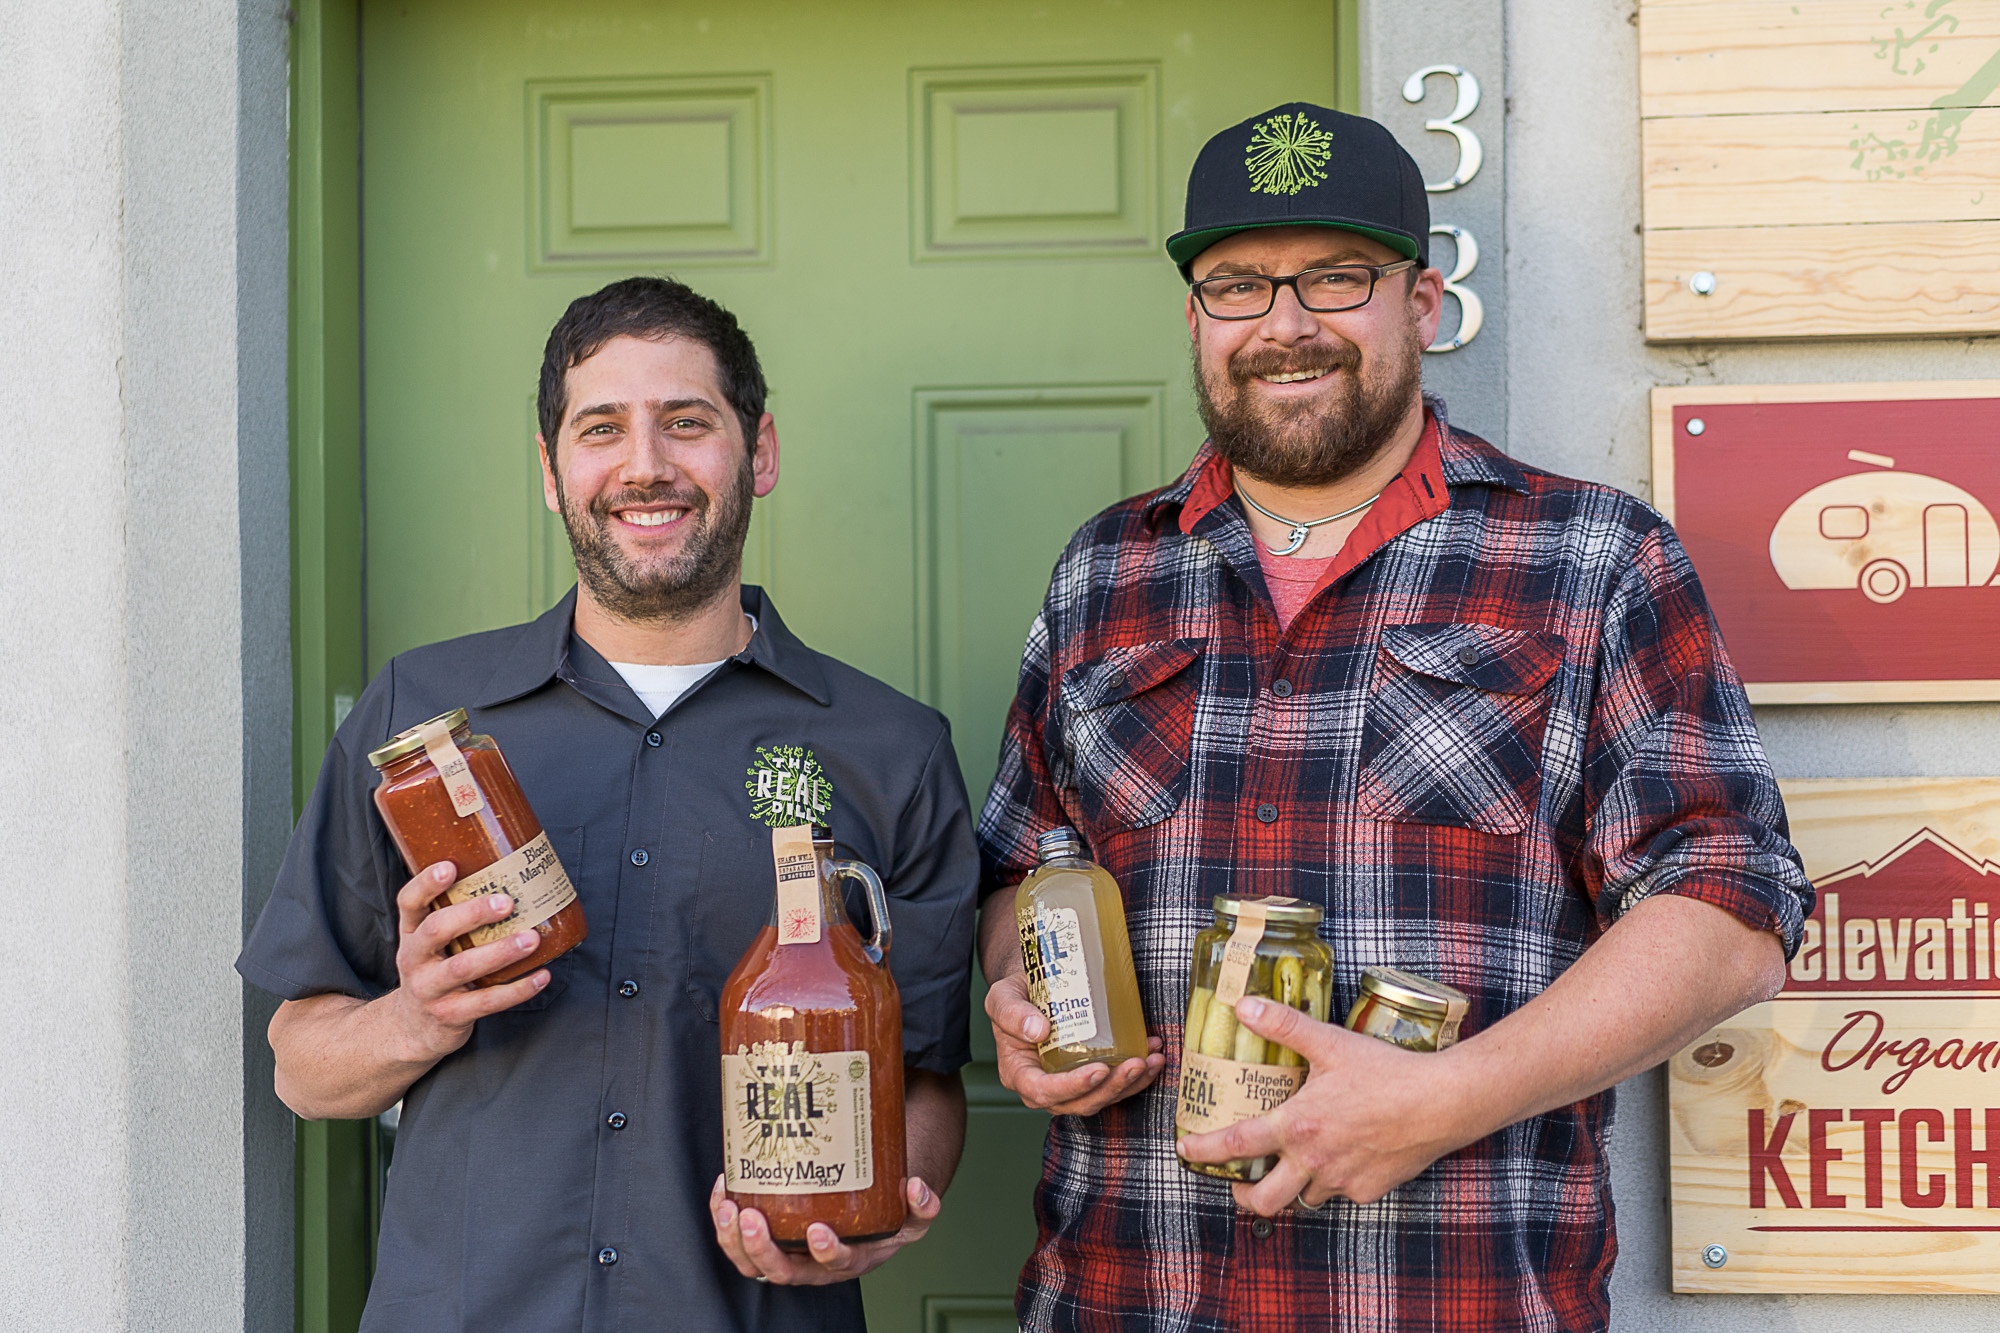 Co Founders of the Real Dill hold pickle jars in Denver.